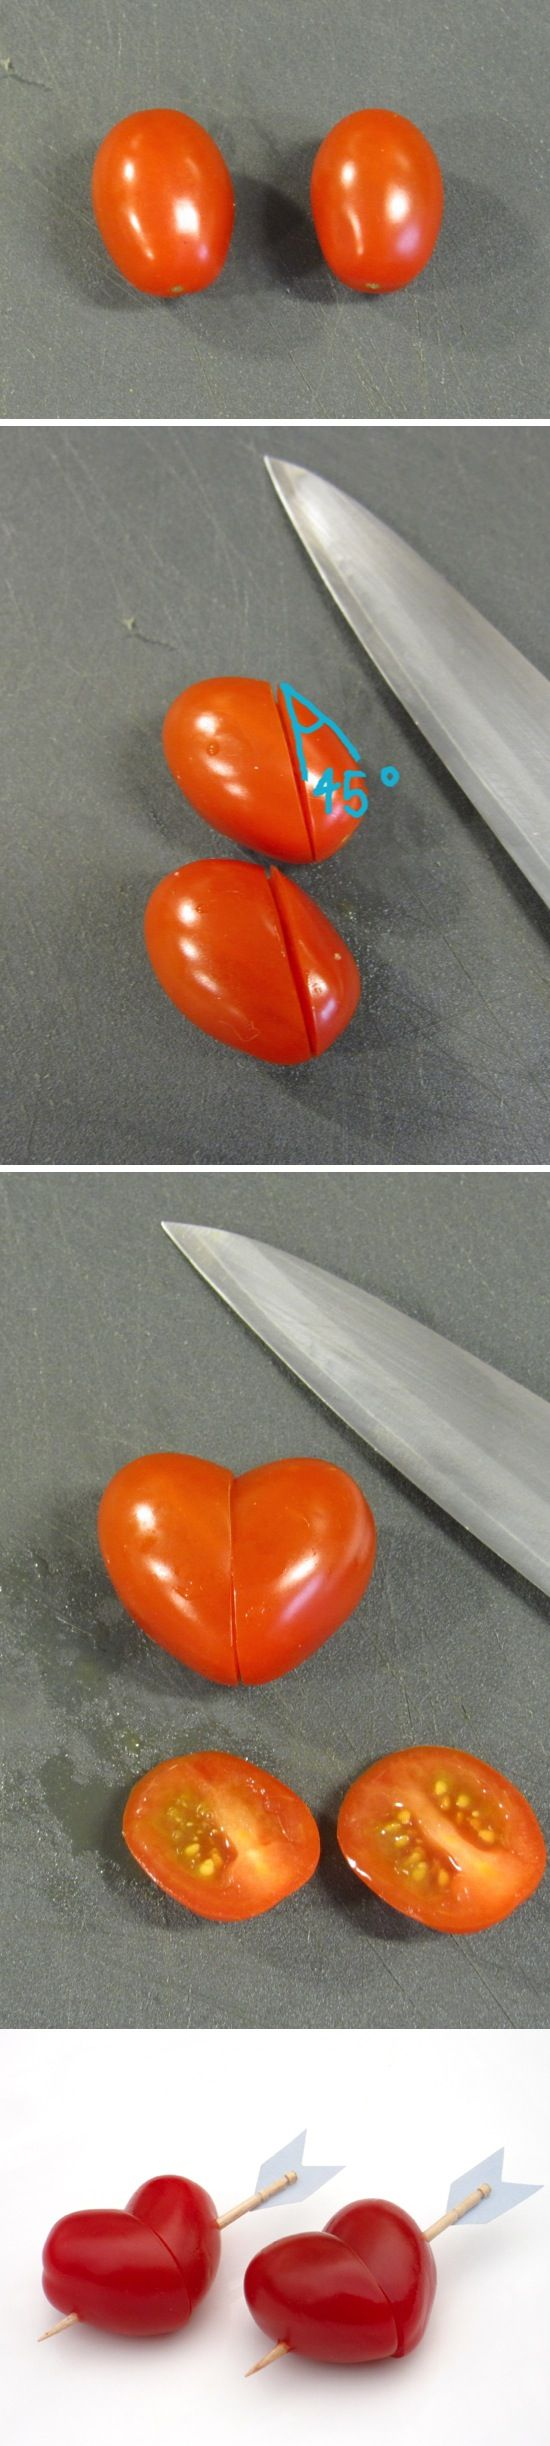 Grape Tomato Hearts